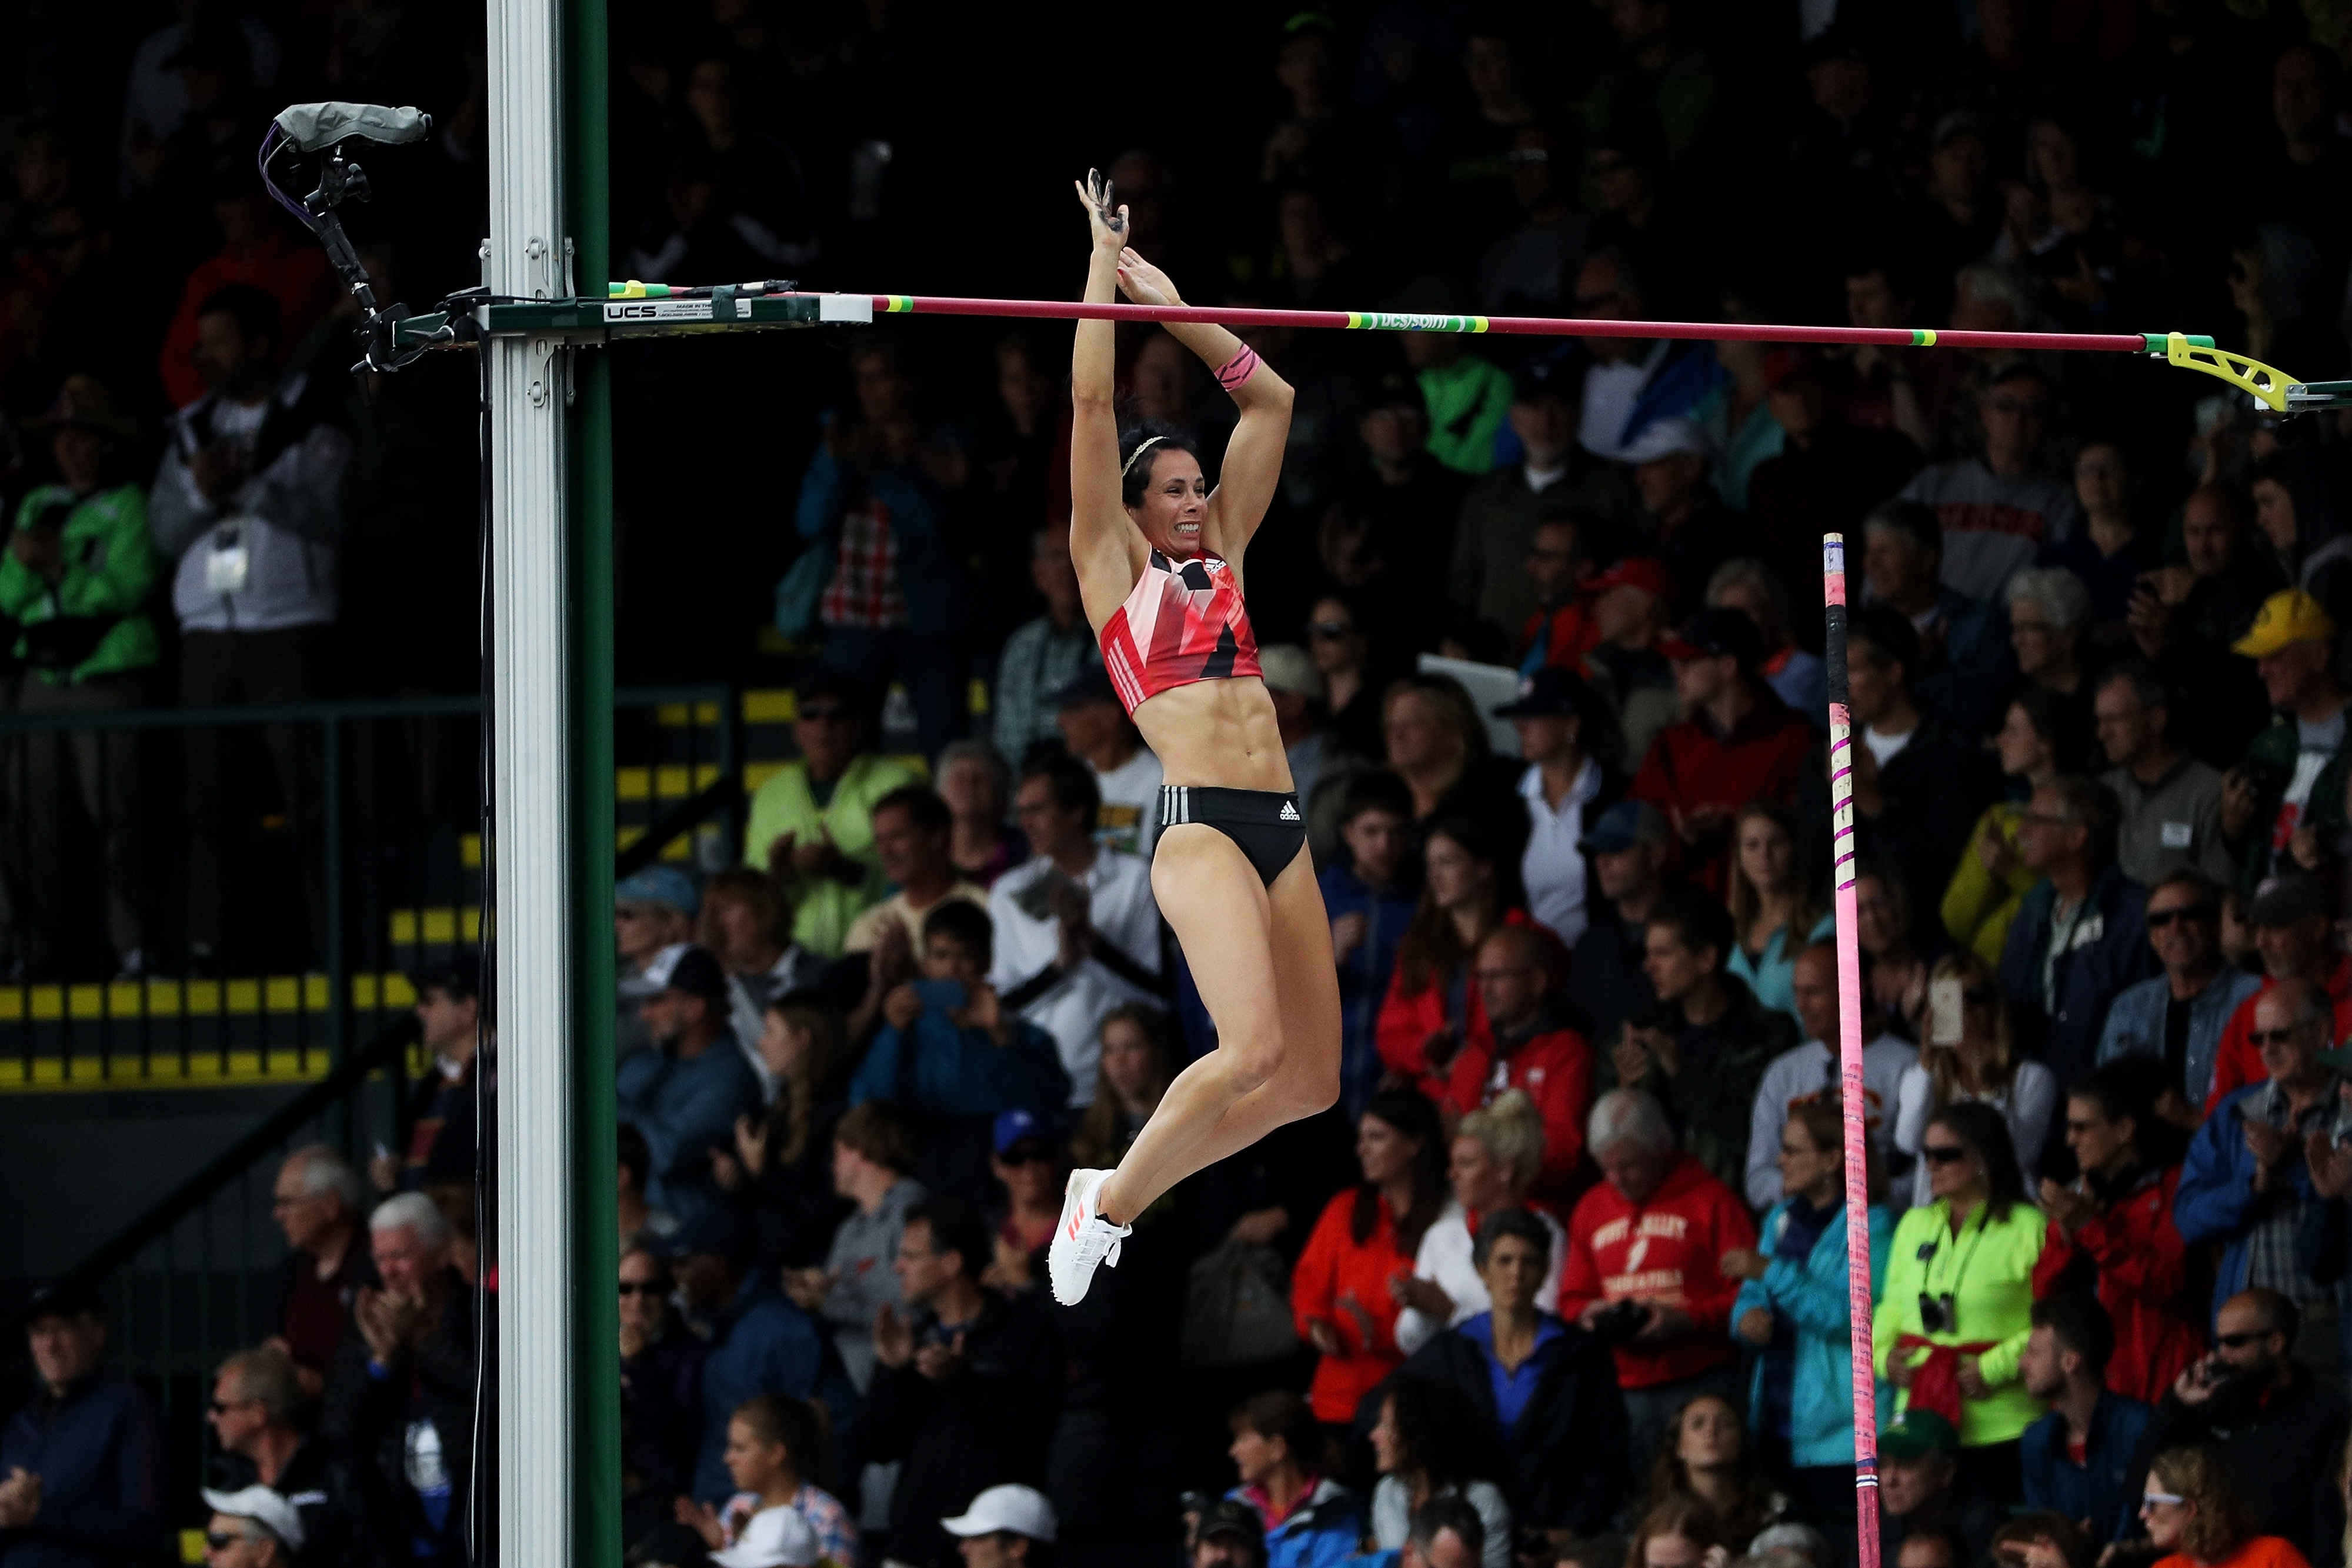 Jenn Suhr competes on her way to placing first in the Women's Pole Vault Final during the 2016 U.S. Olympic Track & Field Team Trials at Hayward Field on July 10, 2016 in Eugene, Oregon.